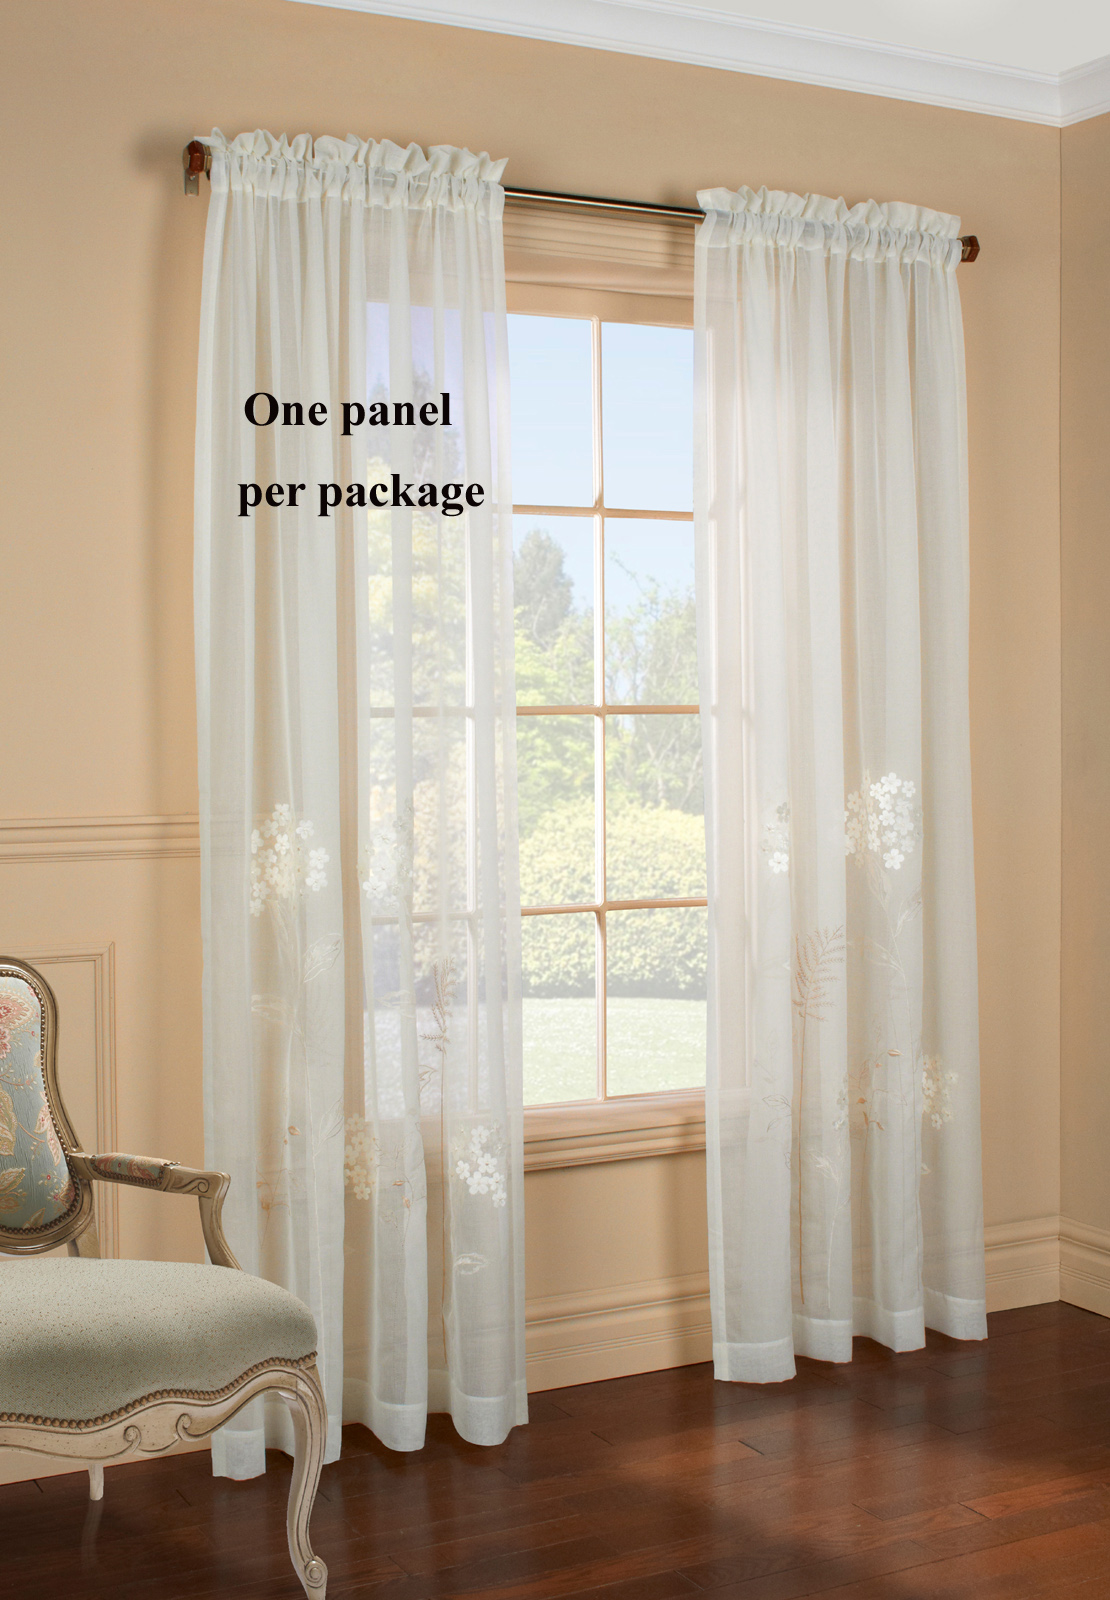 tips applied taupe ideas panels in curtains inspiration fresh curtain to sheer cozy your house